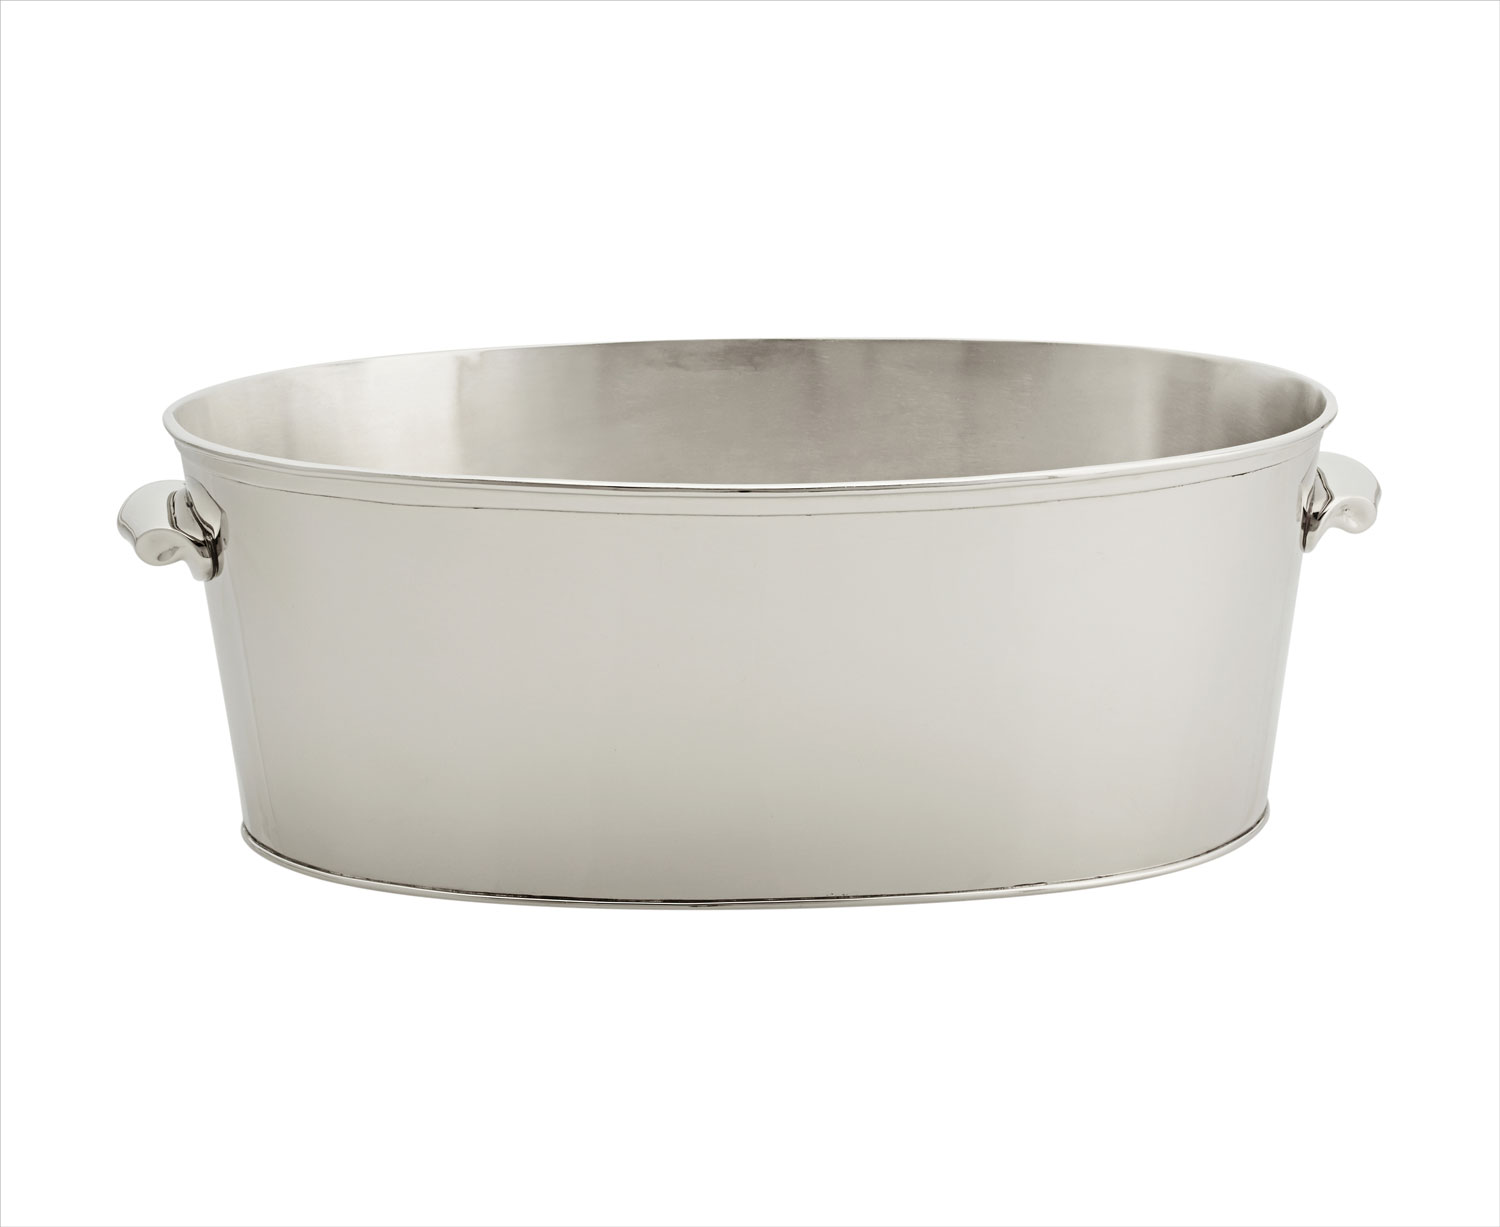 wedding registry product ideas harrison party bucket from pottery barn